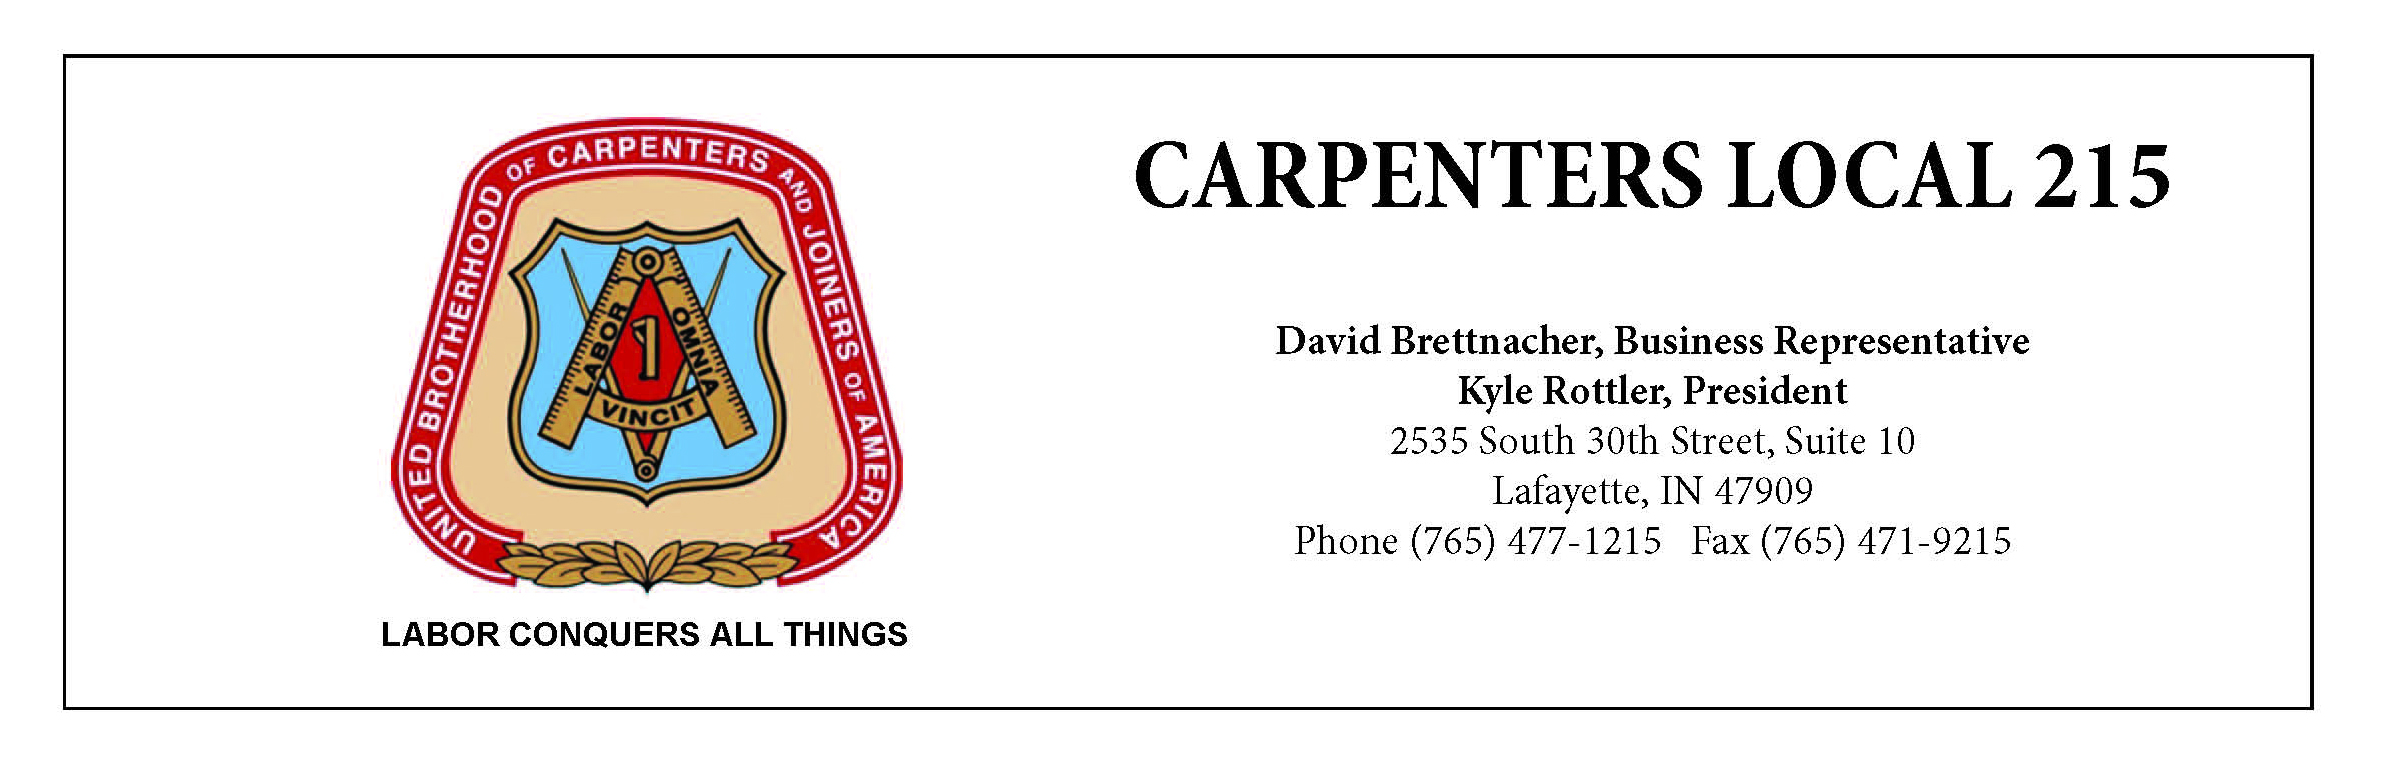 Carpenters Local 215